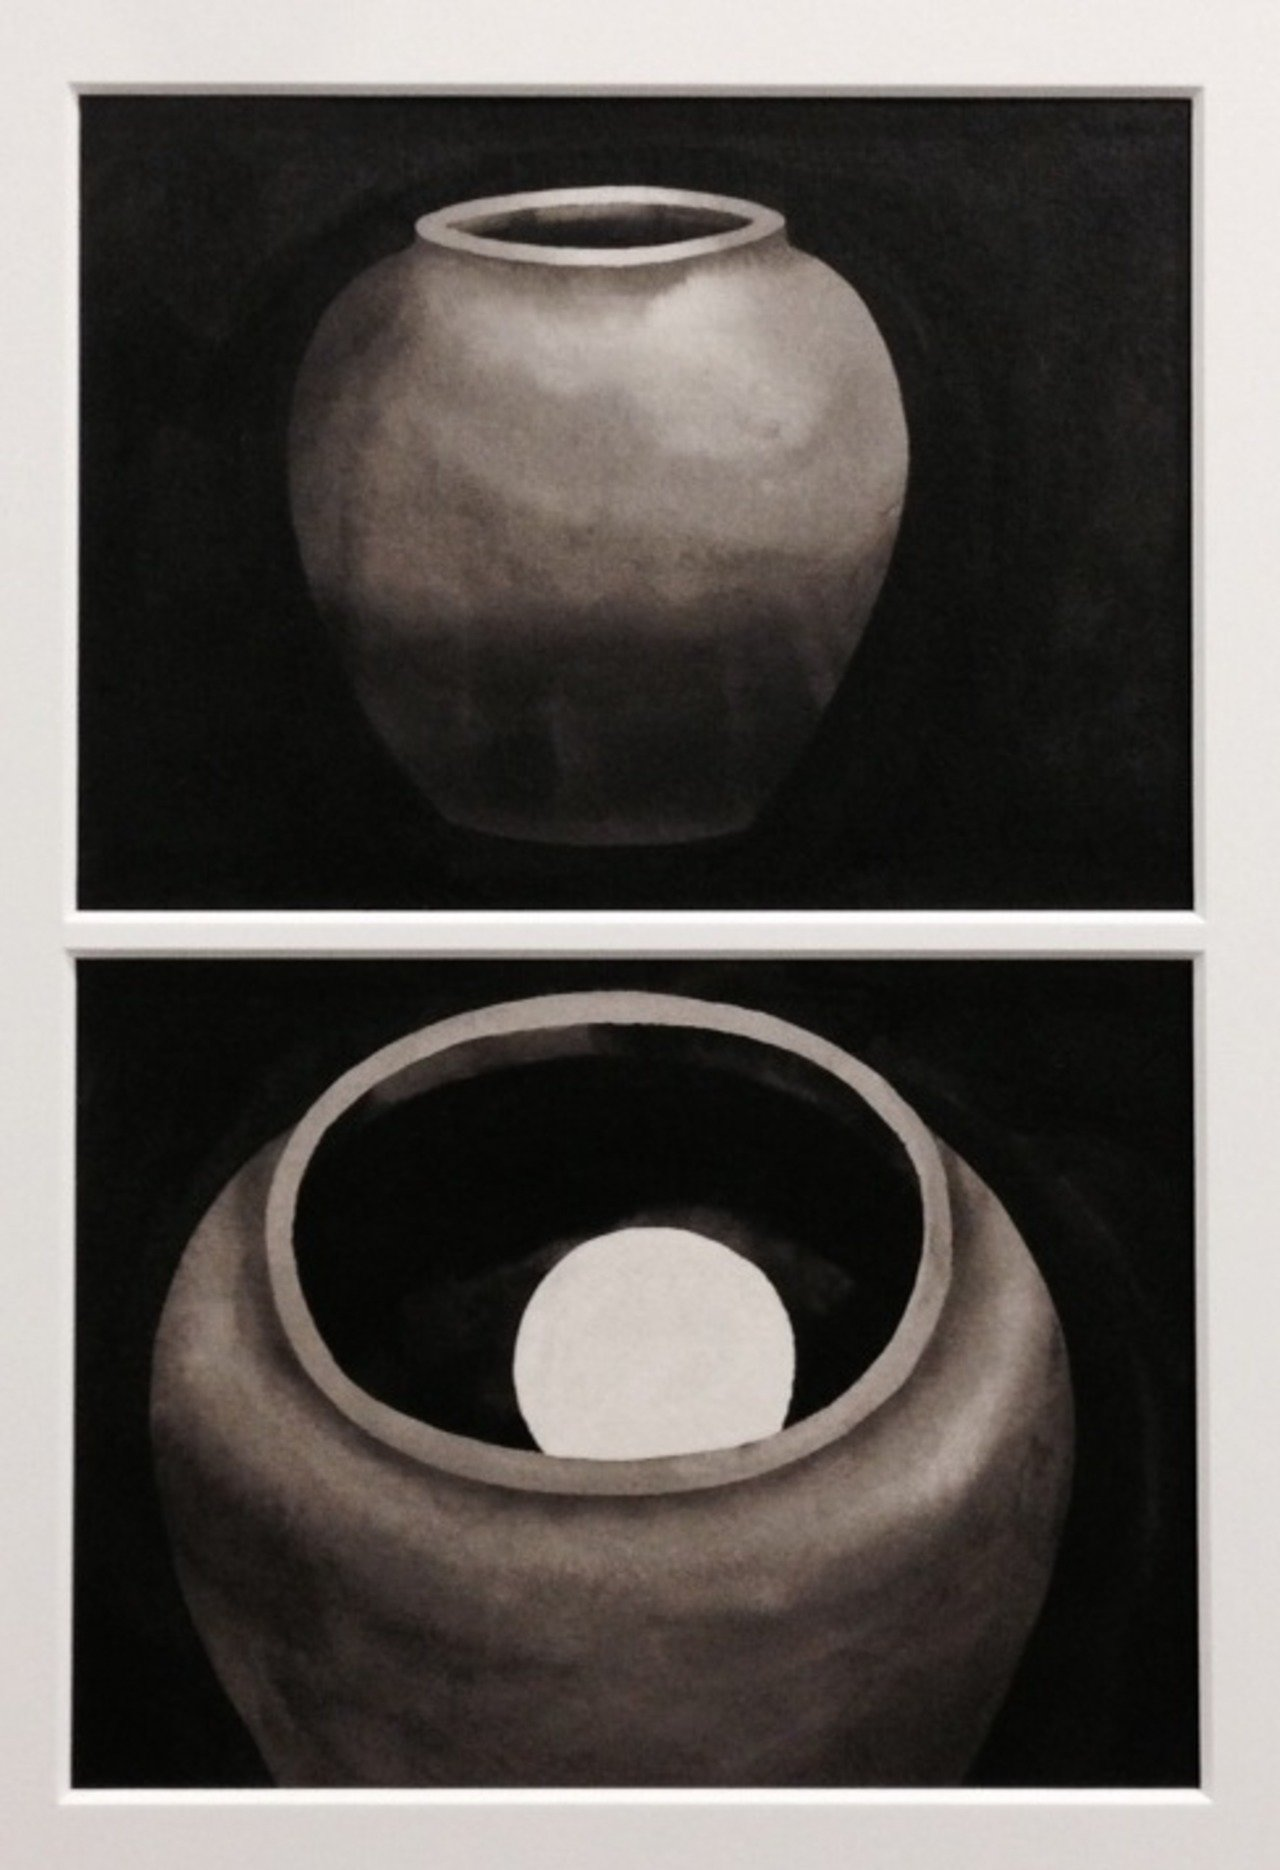 ©Freddy Nadolny, The Moon in the jar, 2014,watercolor on paper, Courtesy of SCAI THE BATHHOUSE